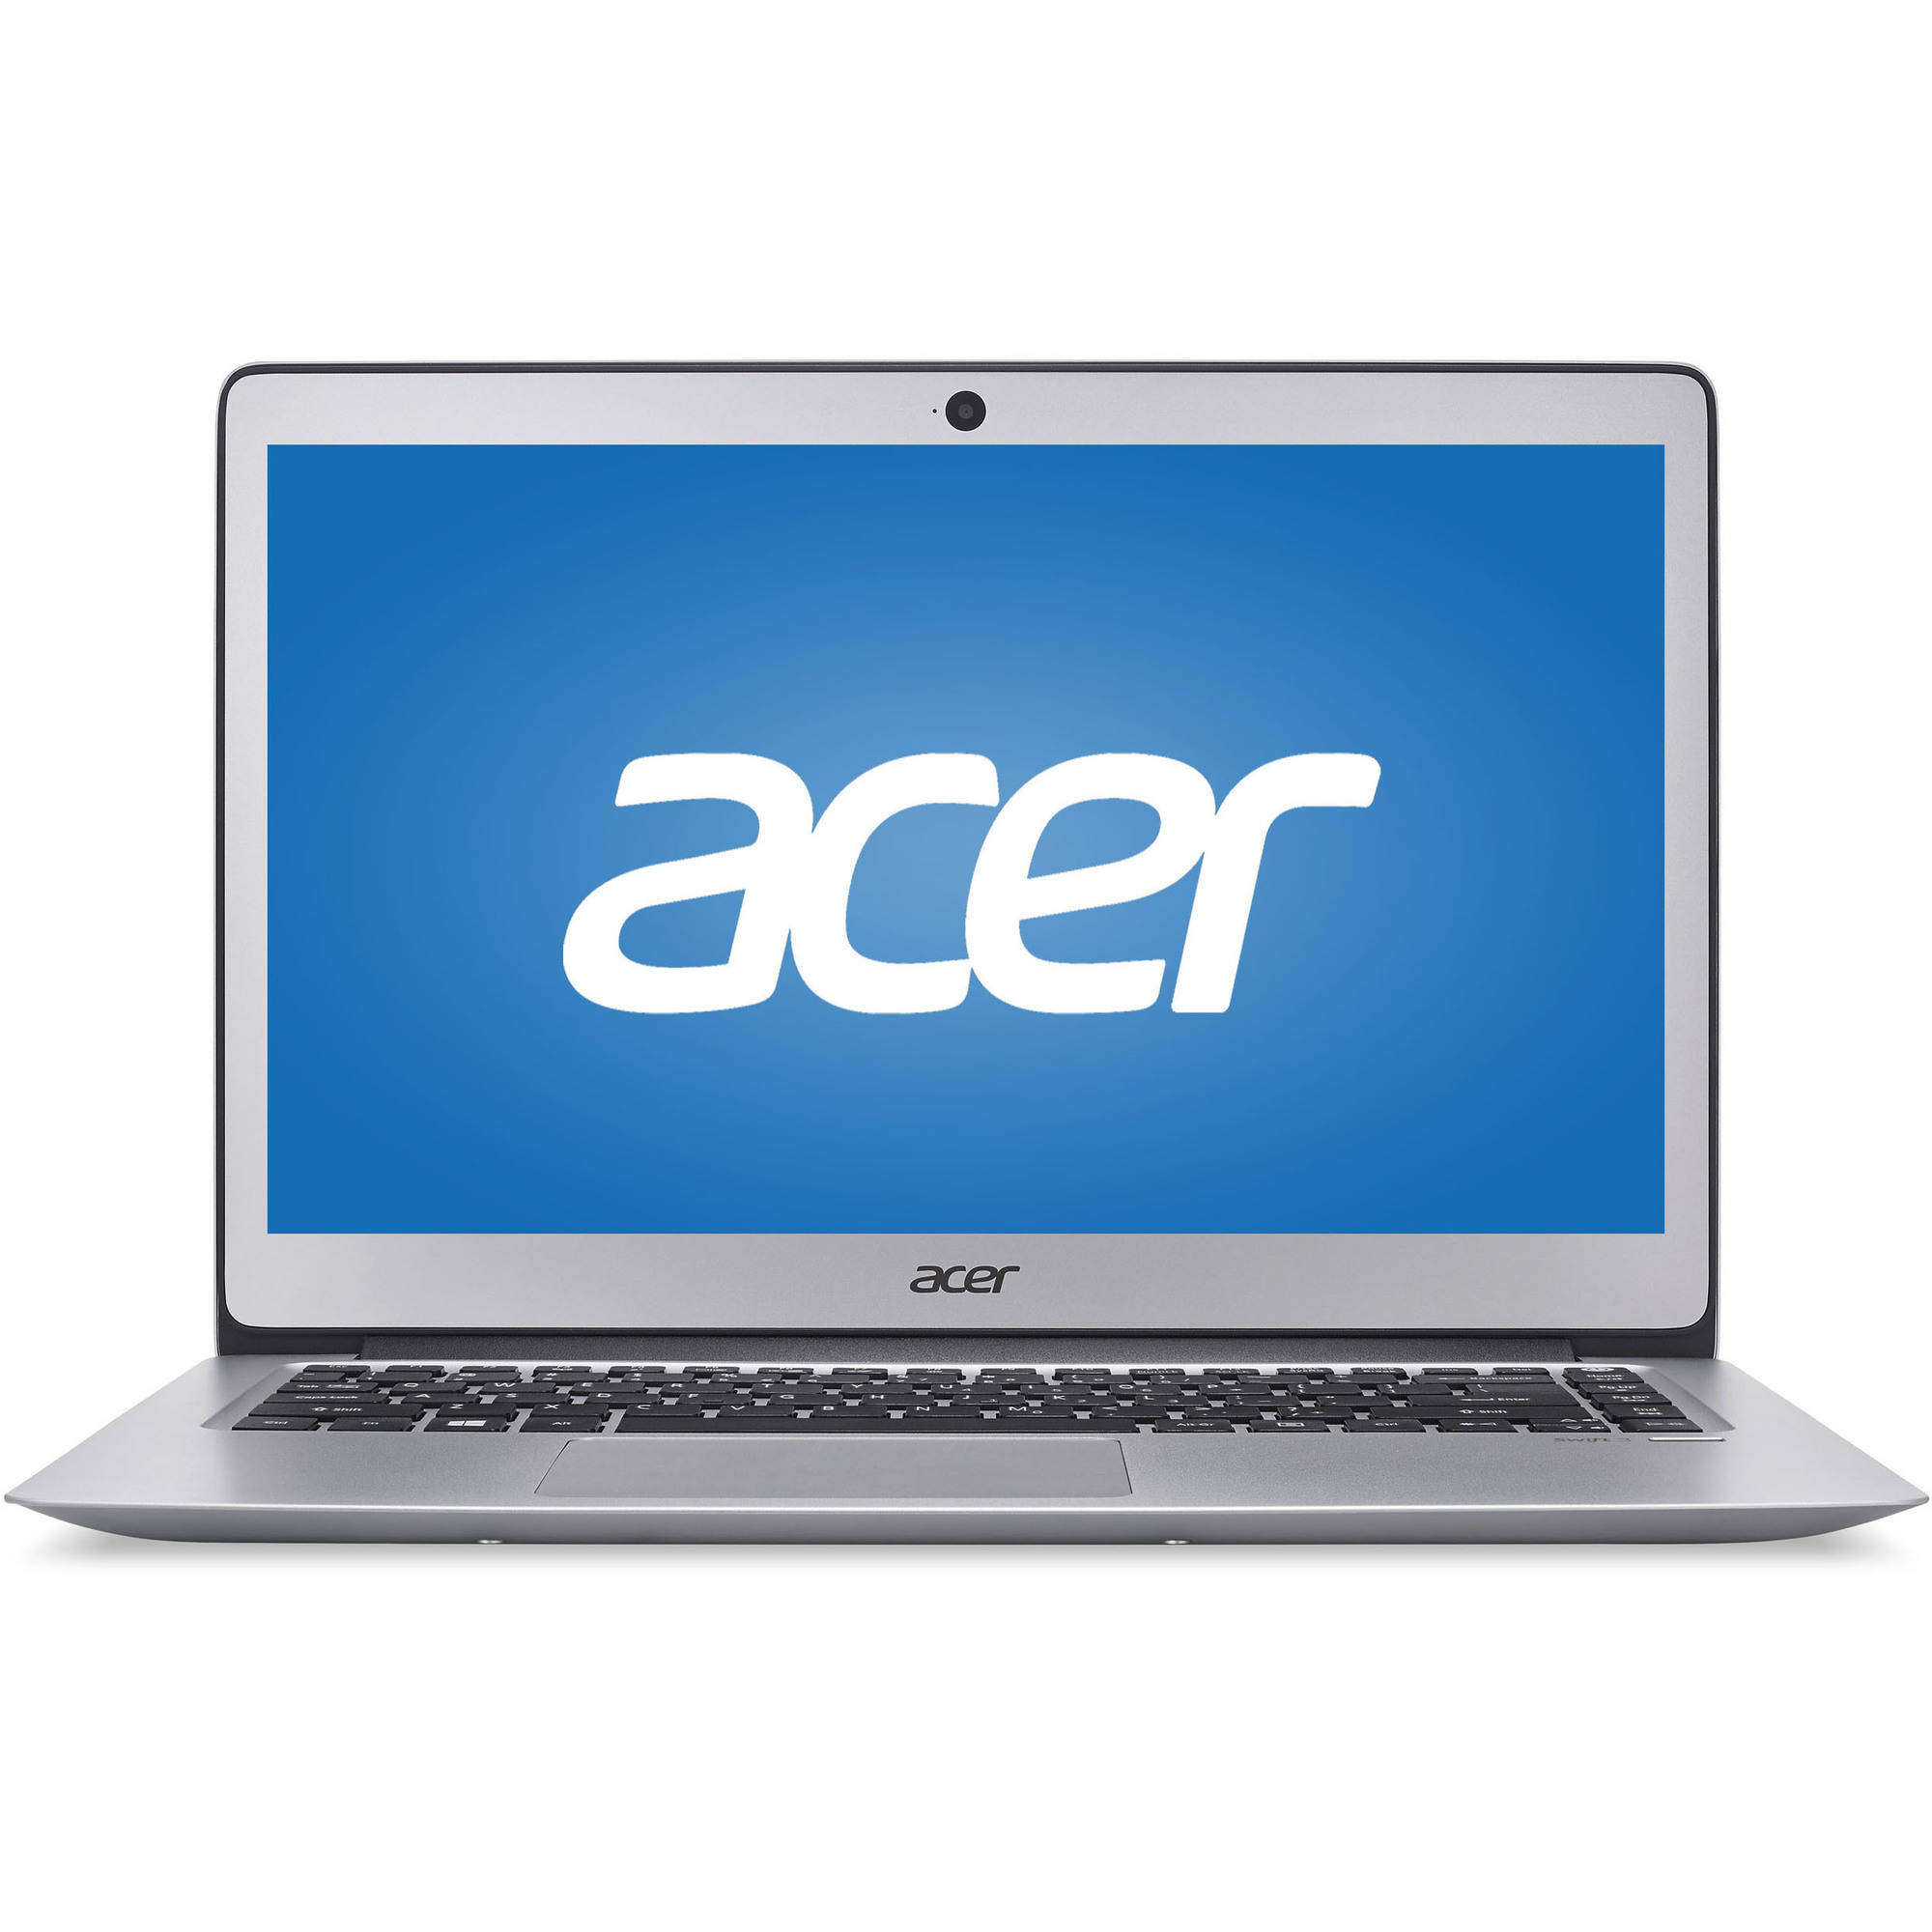 "Acer SF314-51-52W2 Swift 3 14"" Laptop, Windows 10, Intel Core i5-6200U Processor, 8GB RAM, 256GB Solid State Drive by Acer"